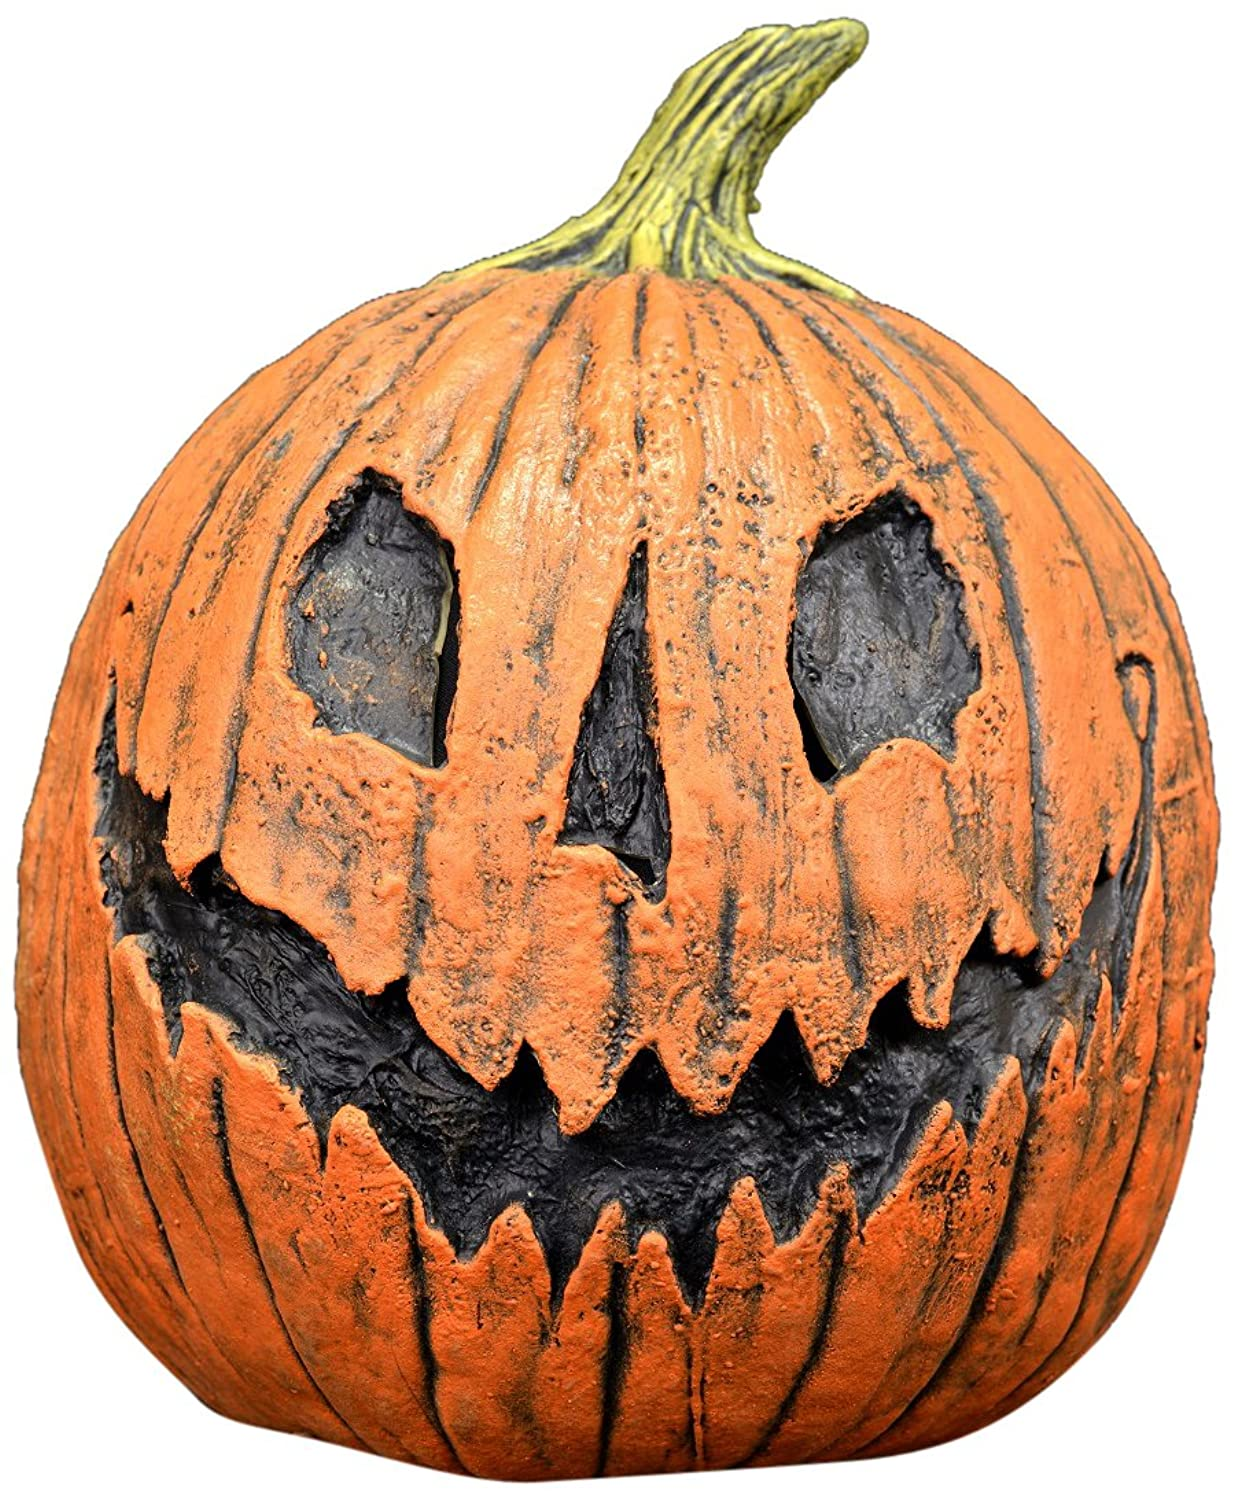 Amazon.com: Trick Or Treat Studios King Pumpkin, Multi, One Size: Clothing